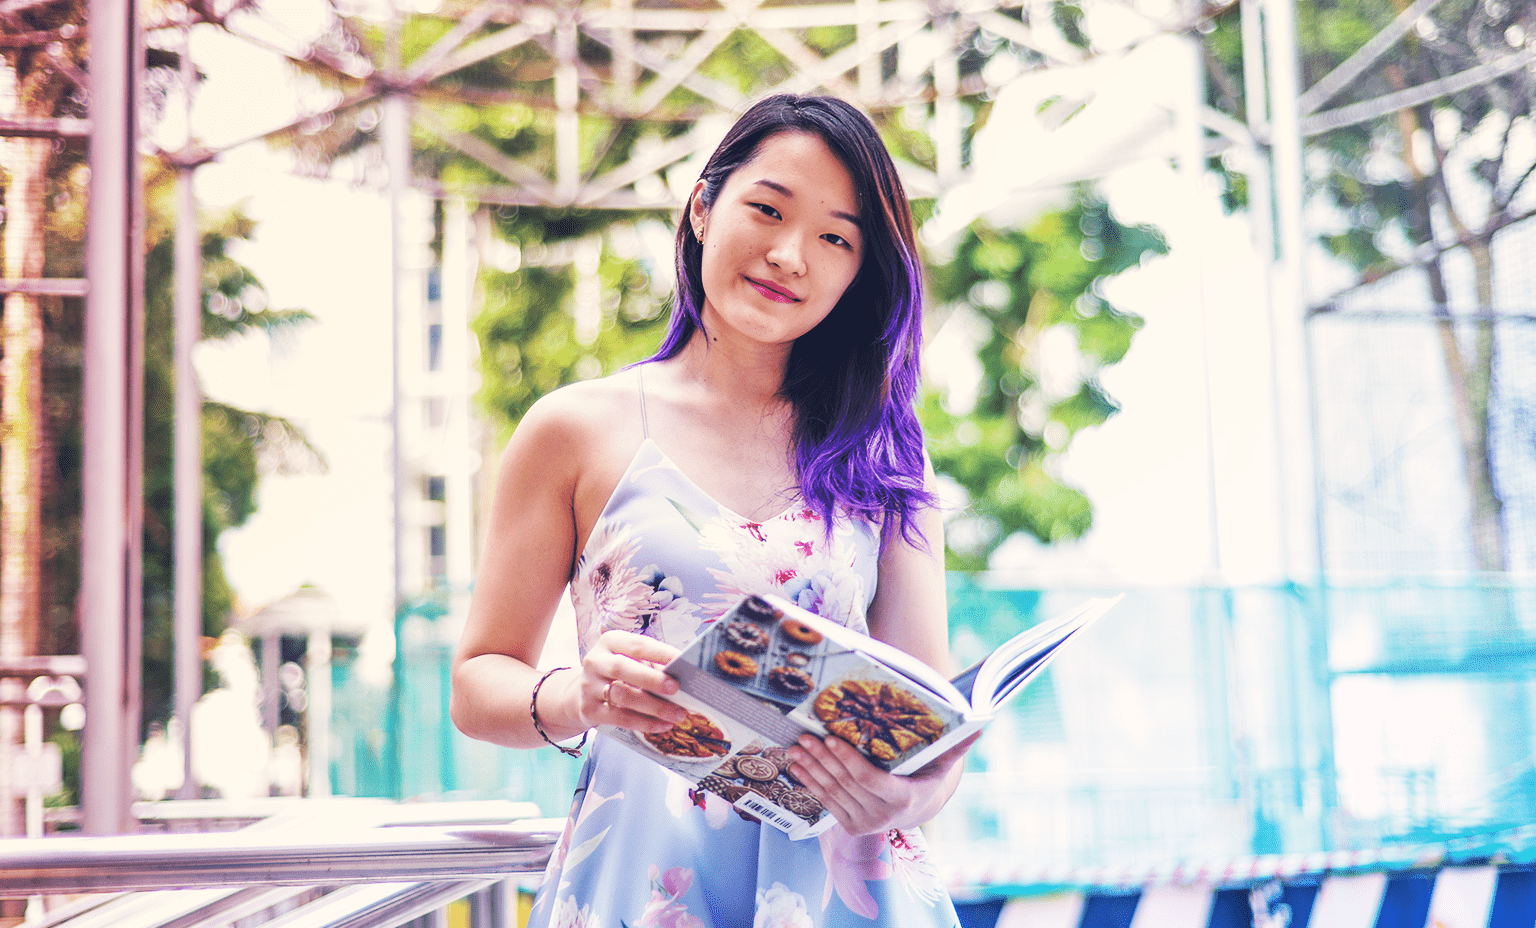 #LetsTalkMillennials My Life on Fast Forward - Claire Lim Pursuing a Career In F&B